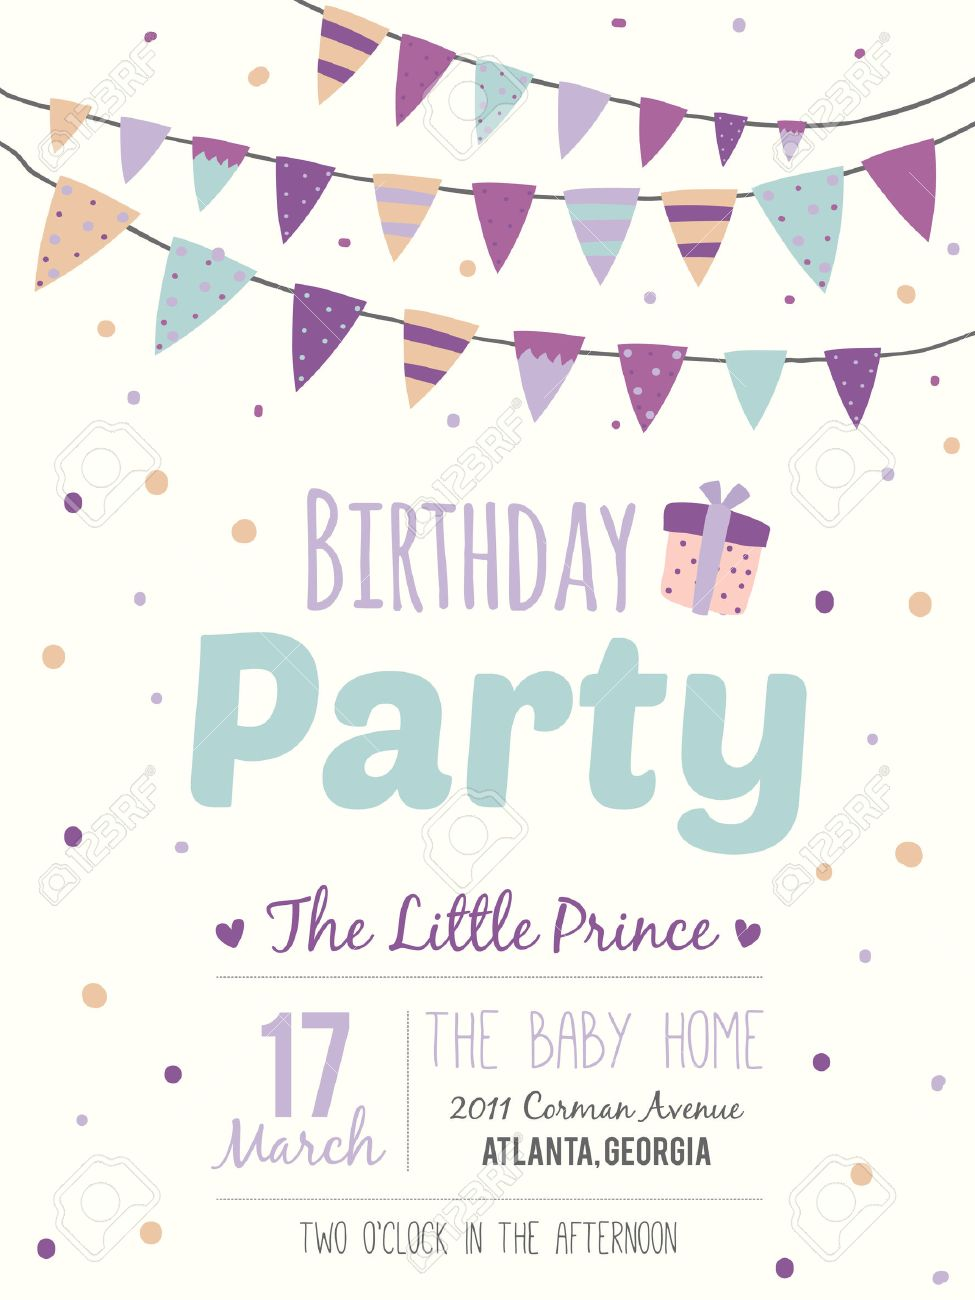 B day poster designs - Unusual Inspirational Romantic And Motivational Quotes Invitation Card Stylish Happy Birthday Poster In Cute